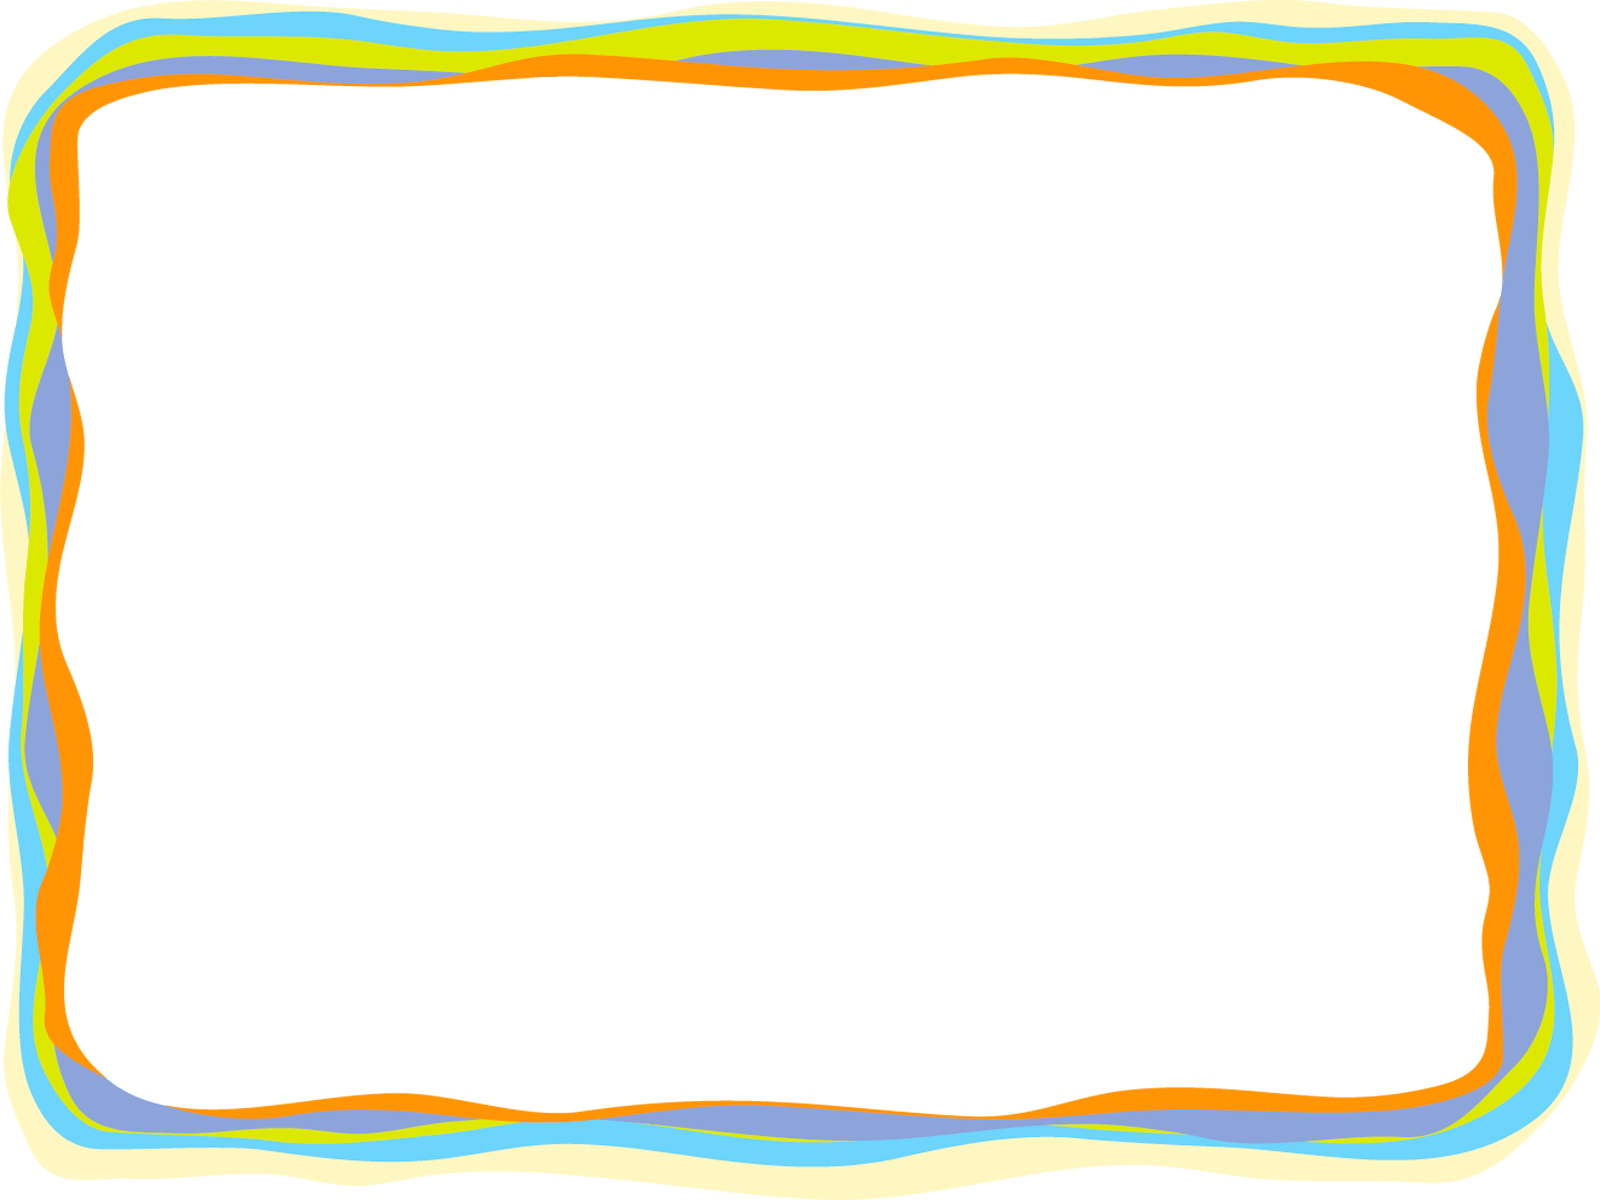 Free Png Borders And Frames Clipart.